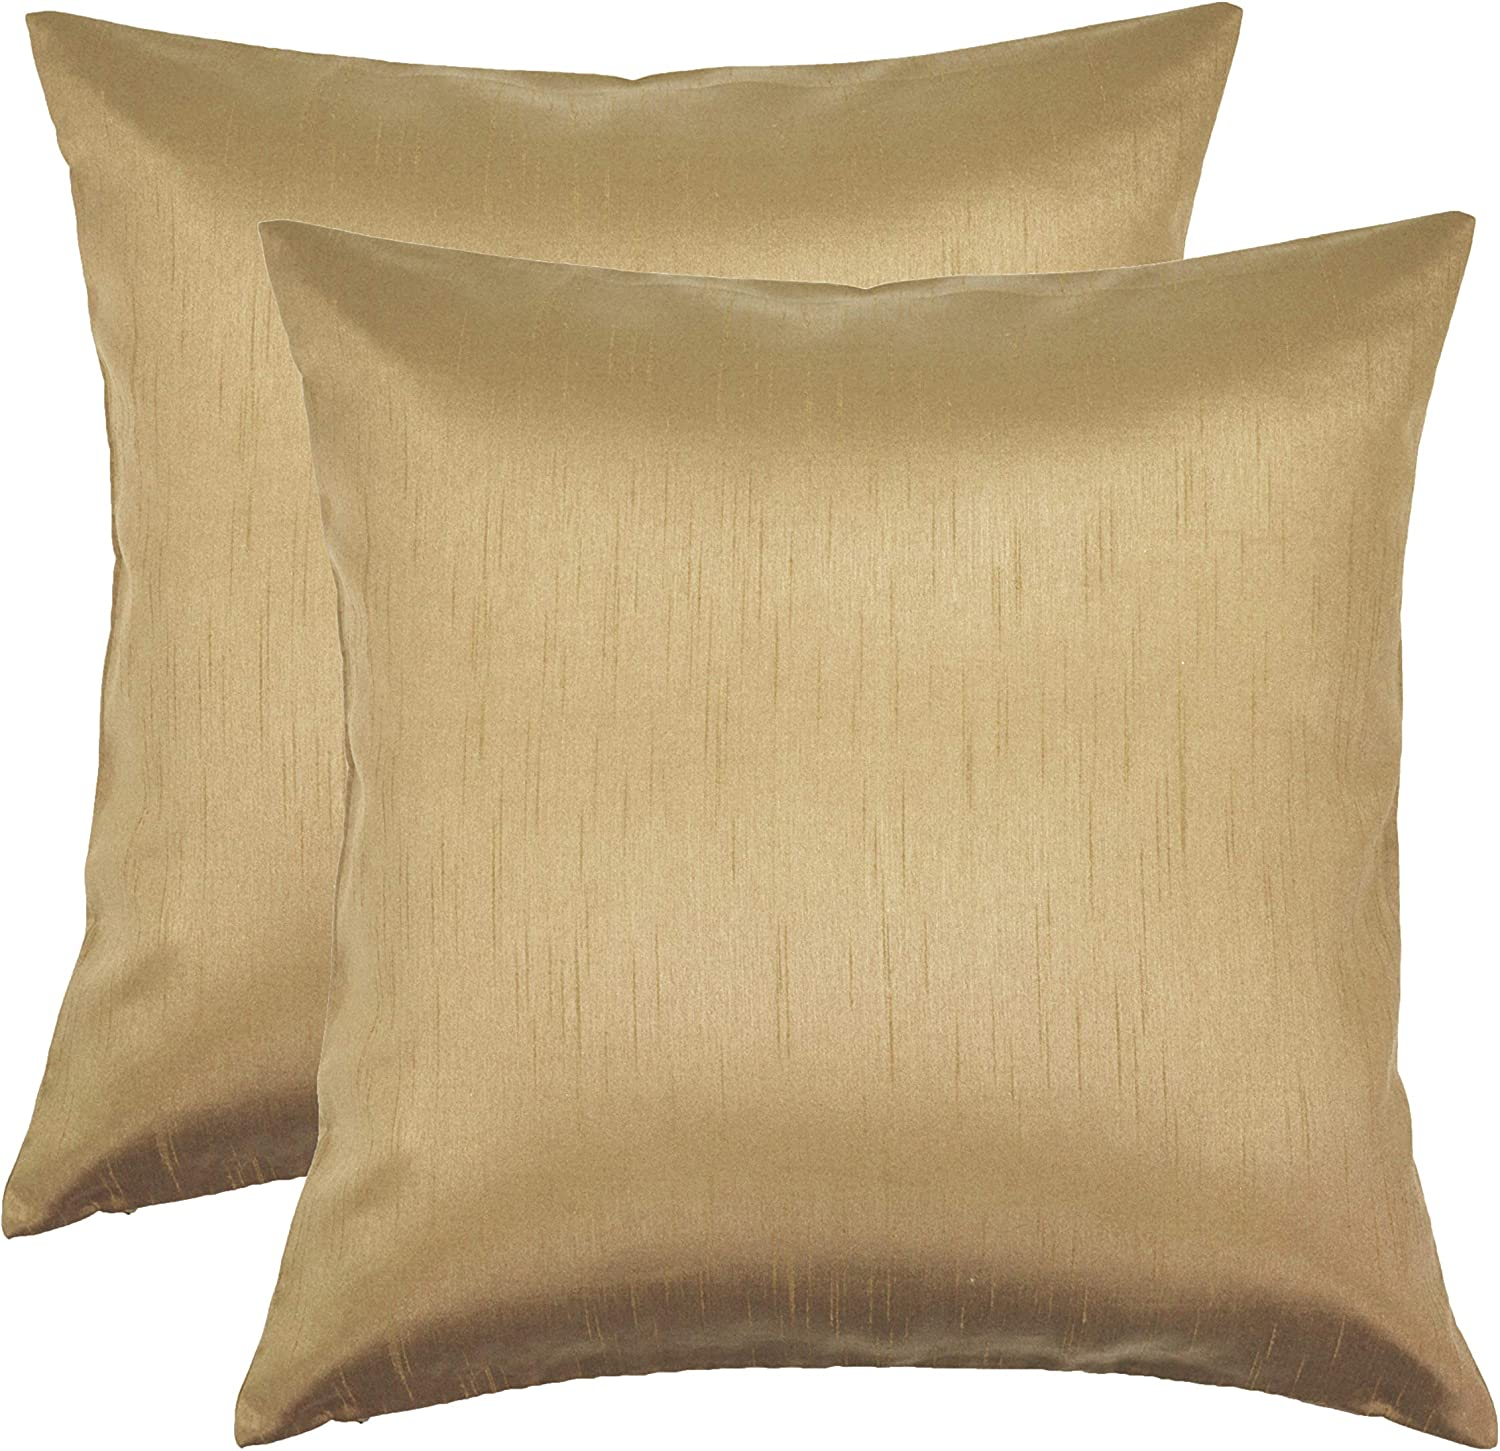 Now free shipping Aiking Home 18x18 Ranking TOP17 Inches Faux Silk Pillow Throw Cover Zi Square